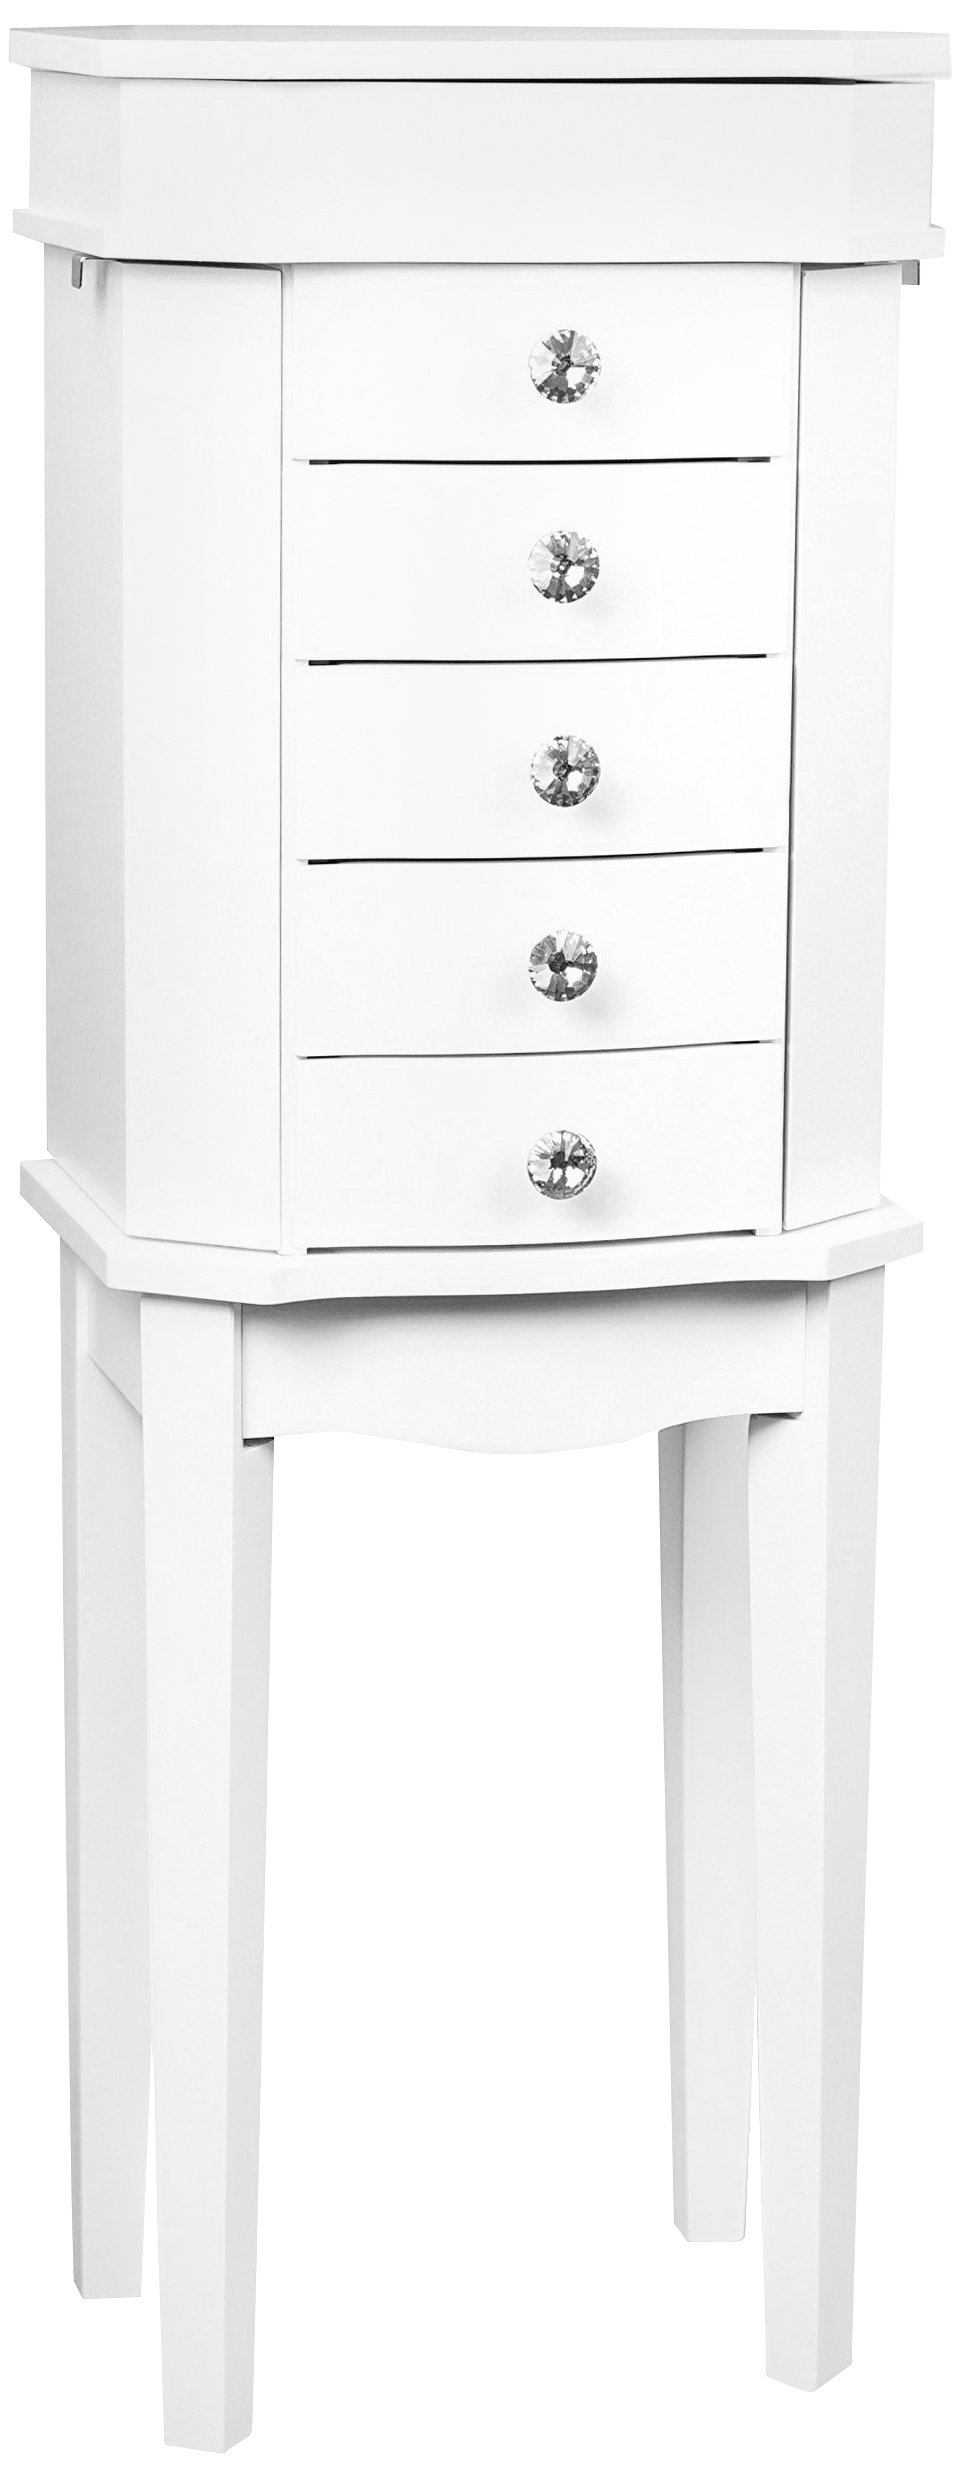 Hives and Honey ERIN Jewelry Armoire White 853499006851 eBay